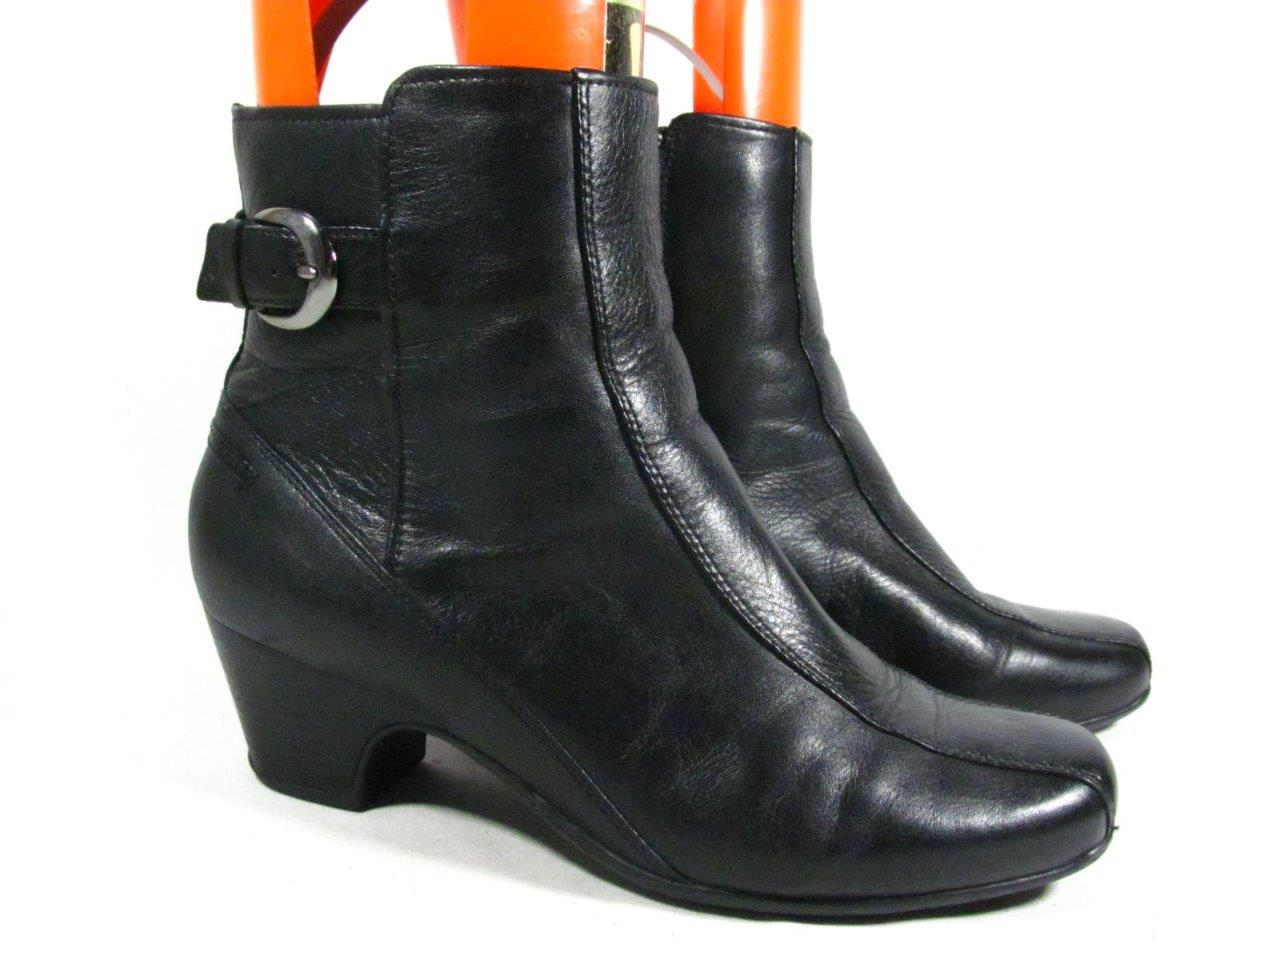 clarks ankle boot size 10 wide black leather ebay